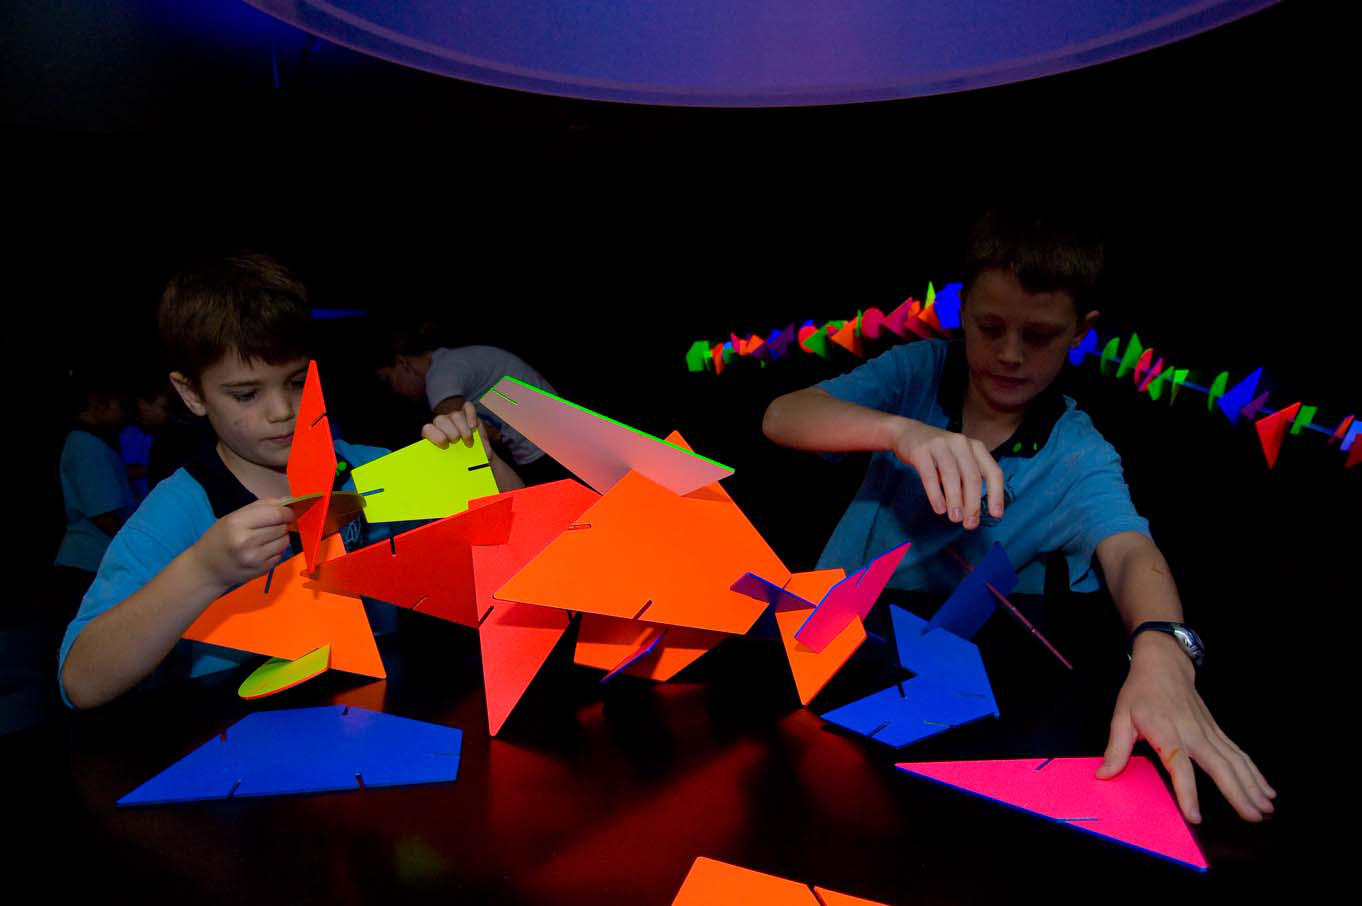 Constructive activity for children   2008  Gallery of Modern Art, Queensland Art Gallery, Brisbane Installation view